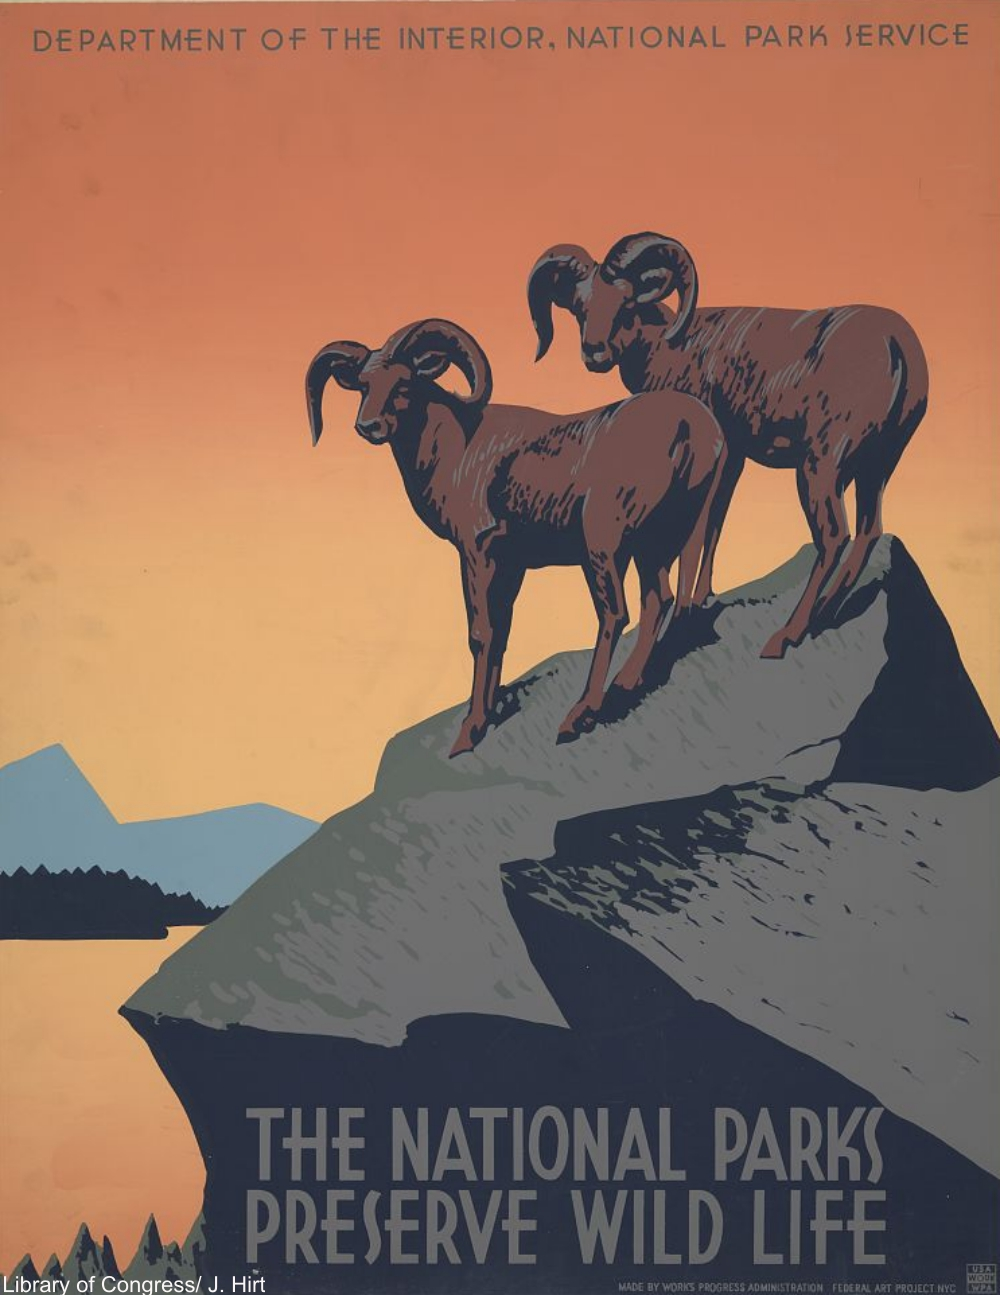 WPA Poster by J. Hirt